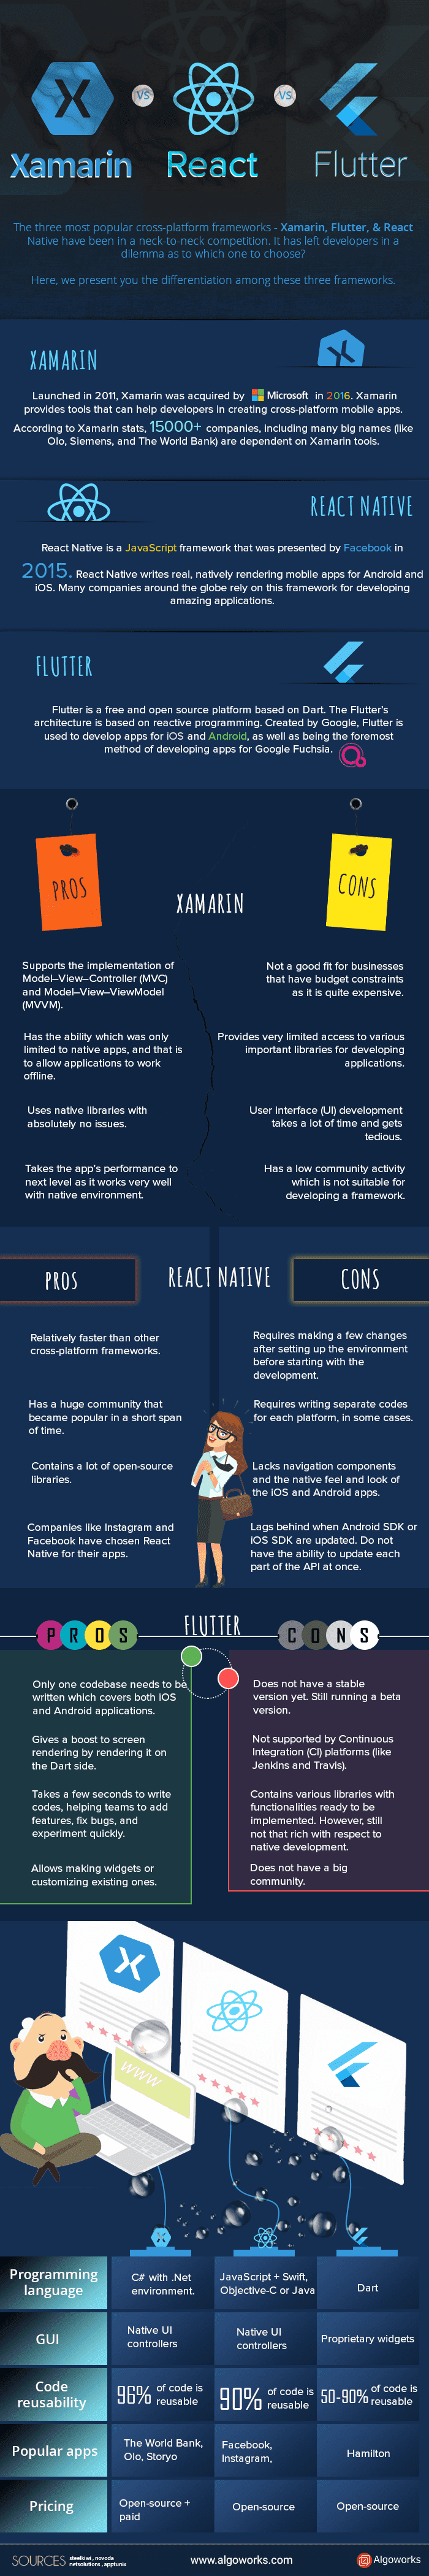 Flutter vs Native vs Xamarin Reaction #infographic